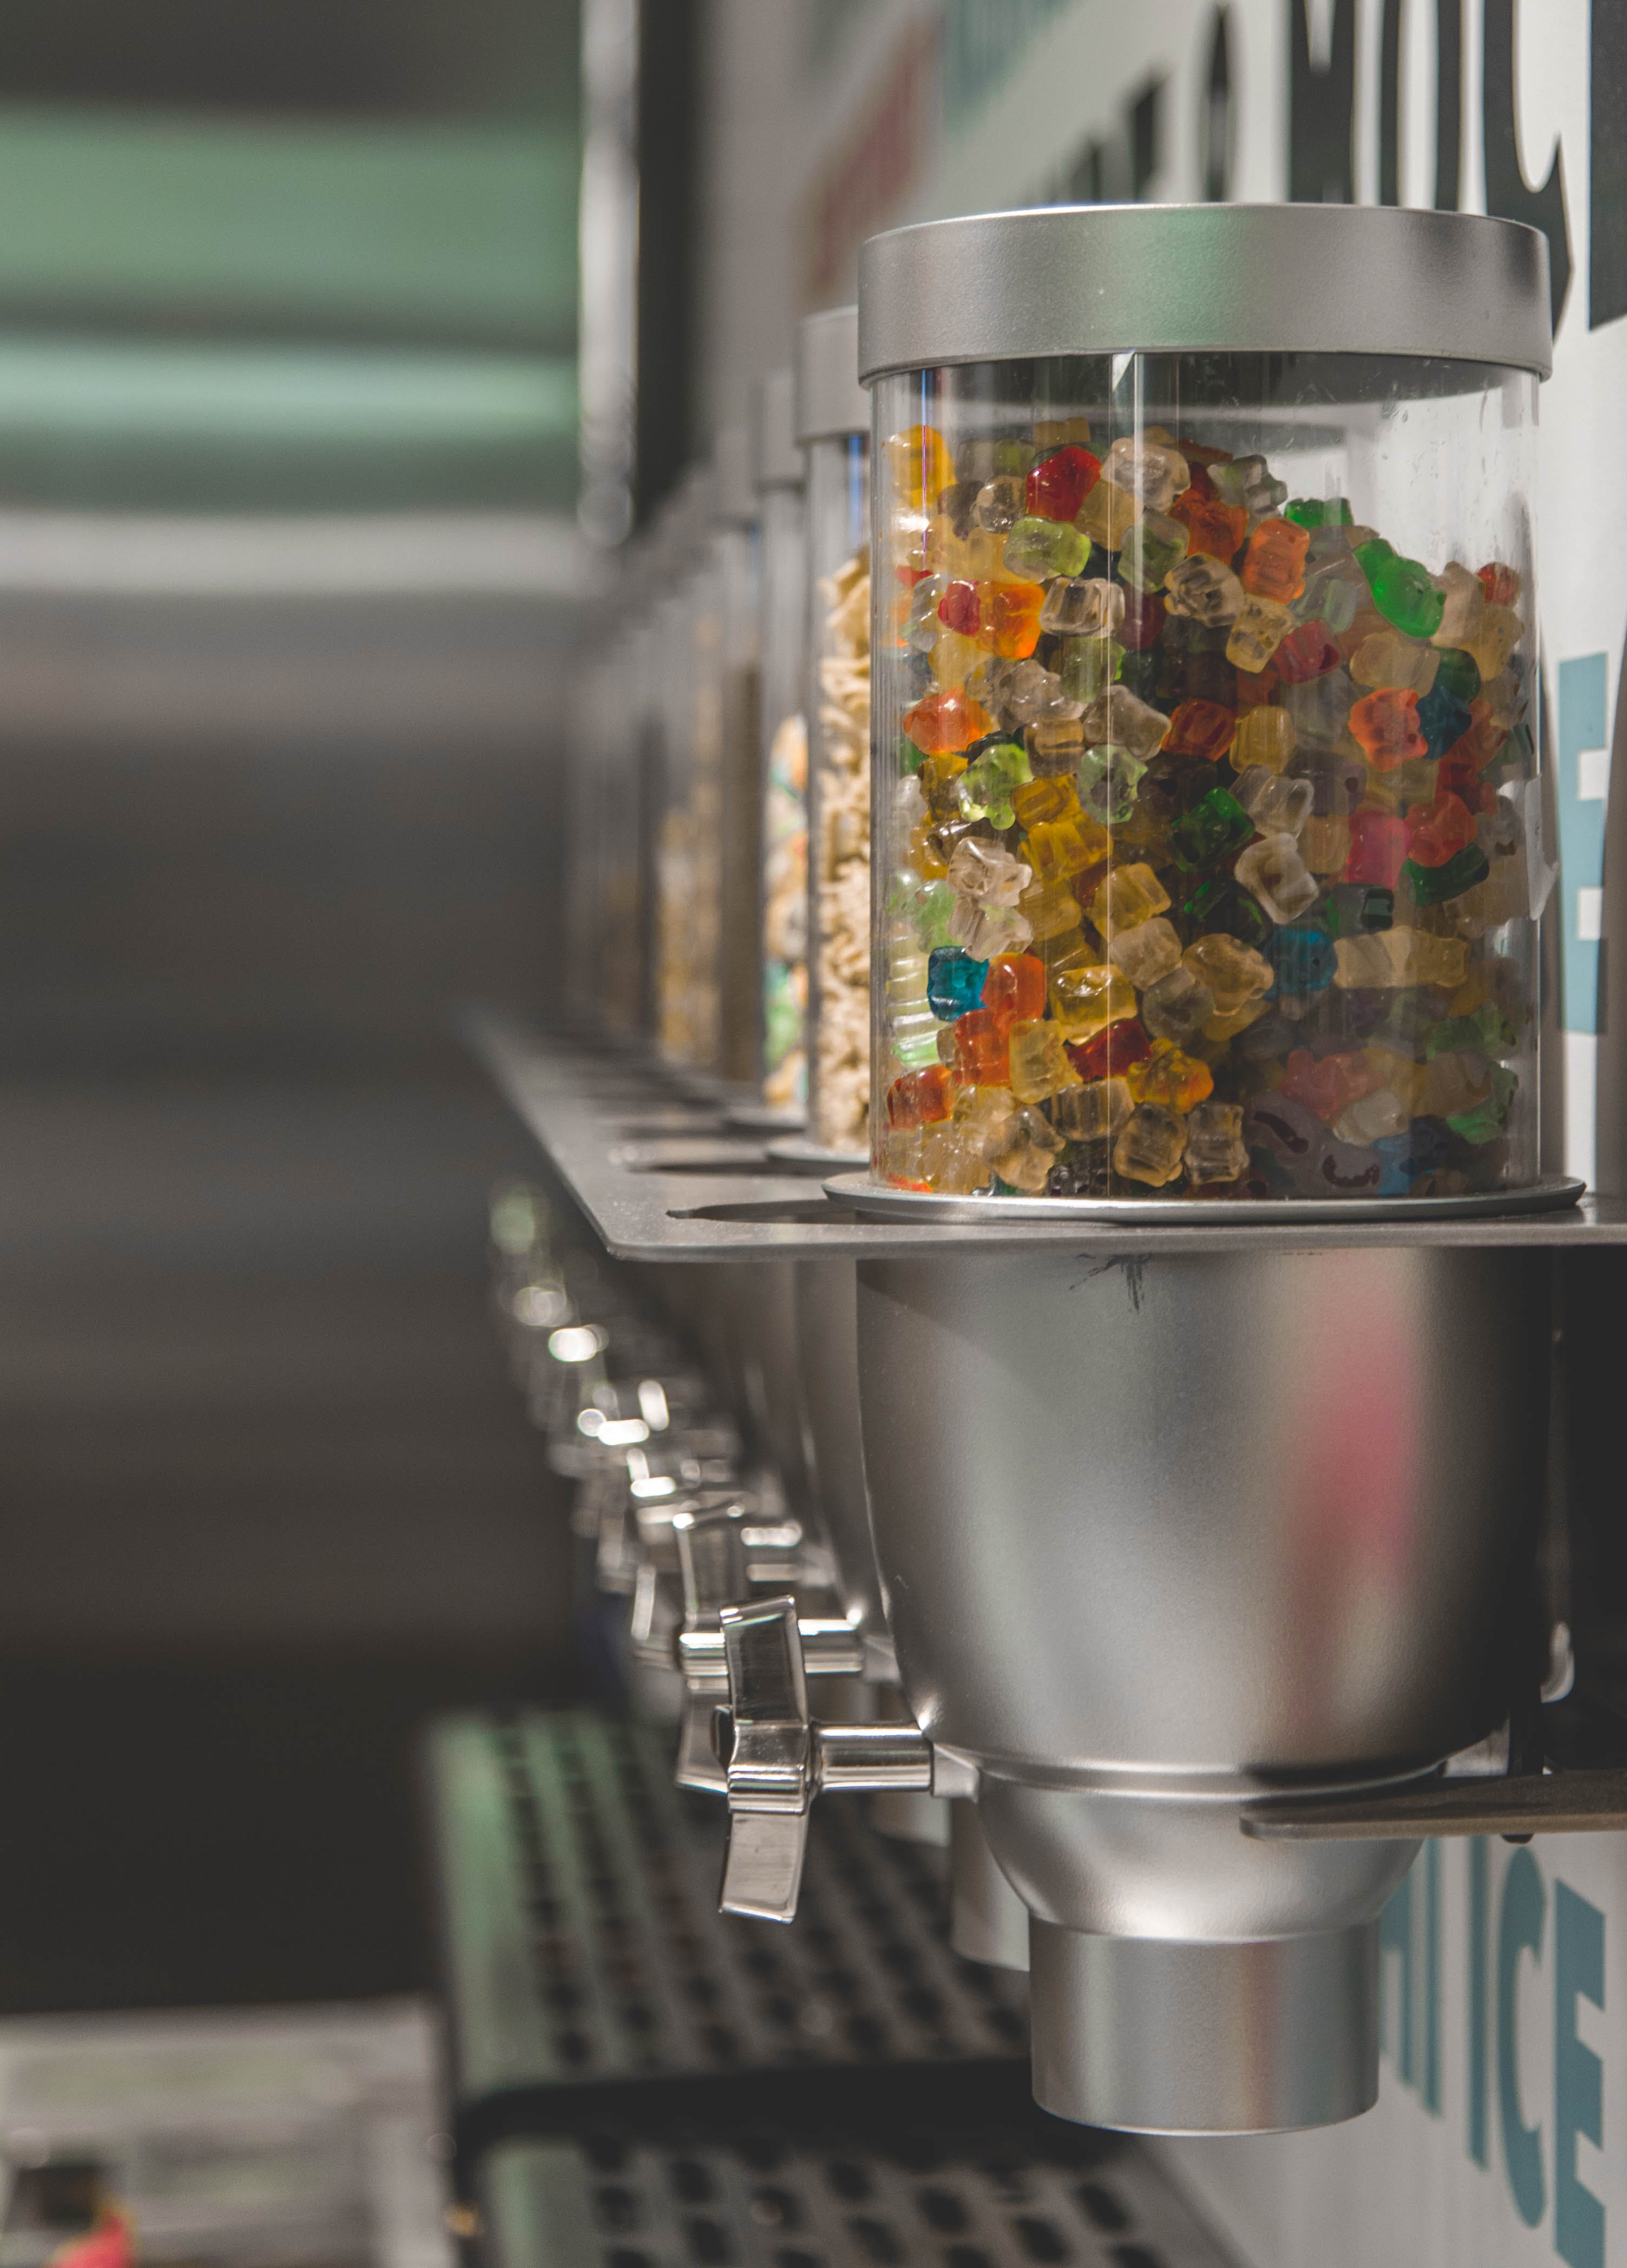 Selective Focus Photography of Candy Dispenser